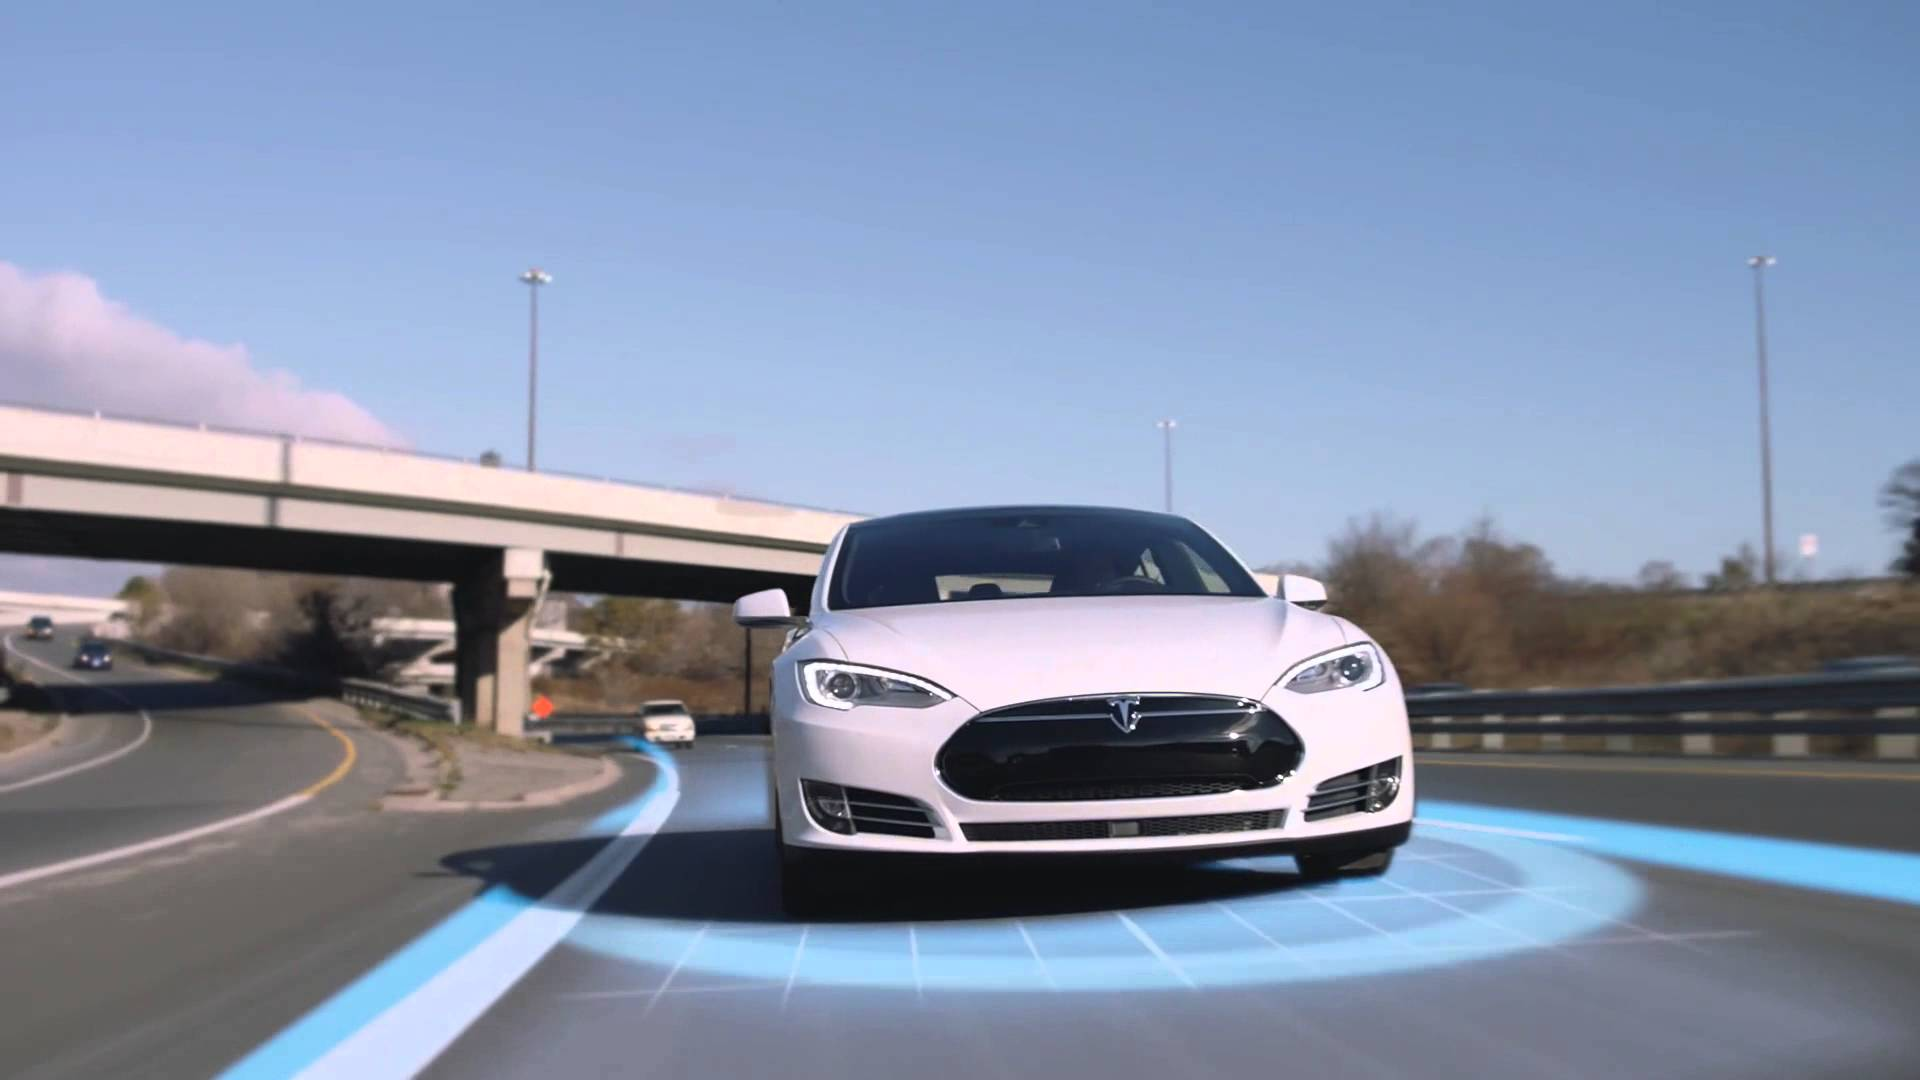 Tesla Navigate On Autopilot Is The Latest Progression To Fully Autonomous Vehicles